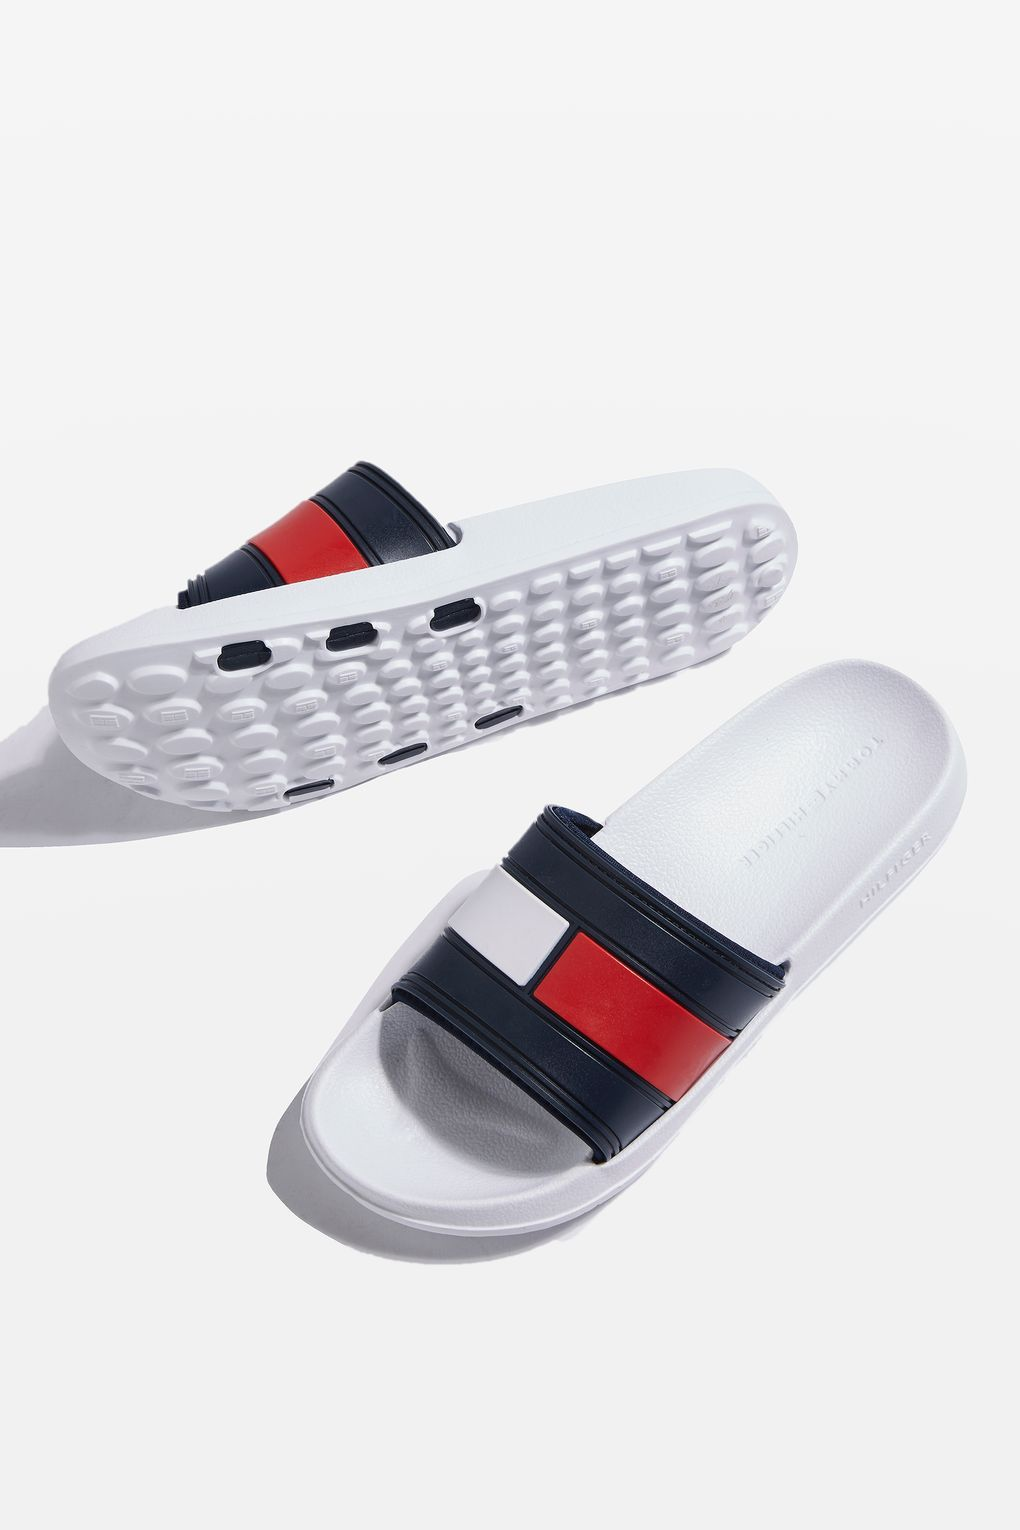 4486e06eaec6 Sliders by Tommy Hilfiger in 2019